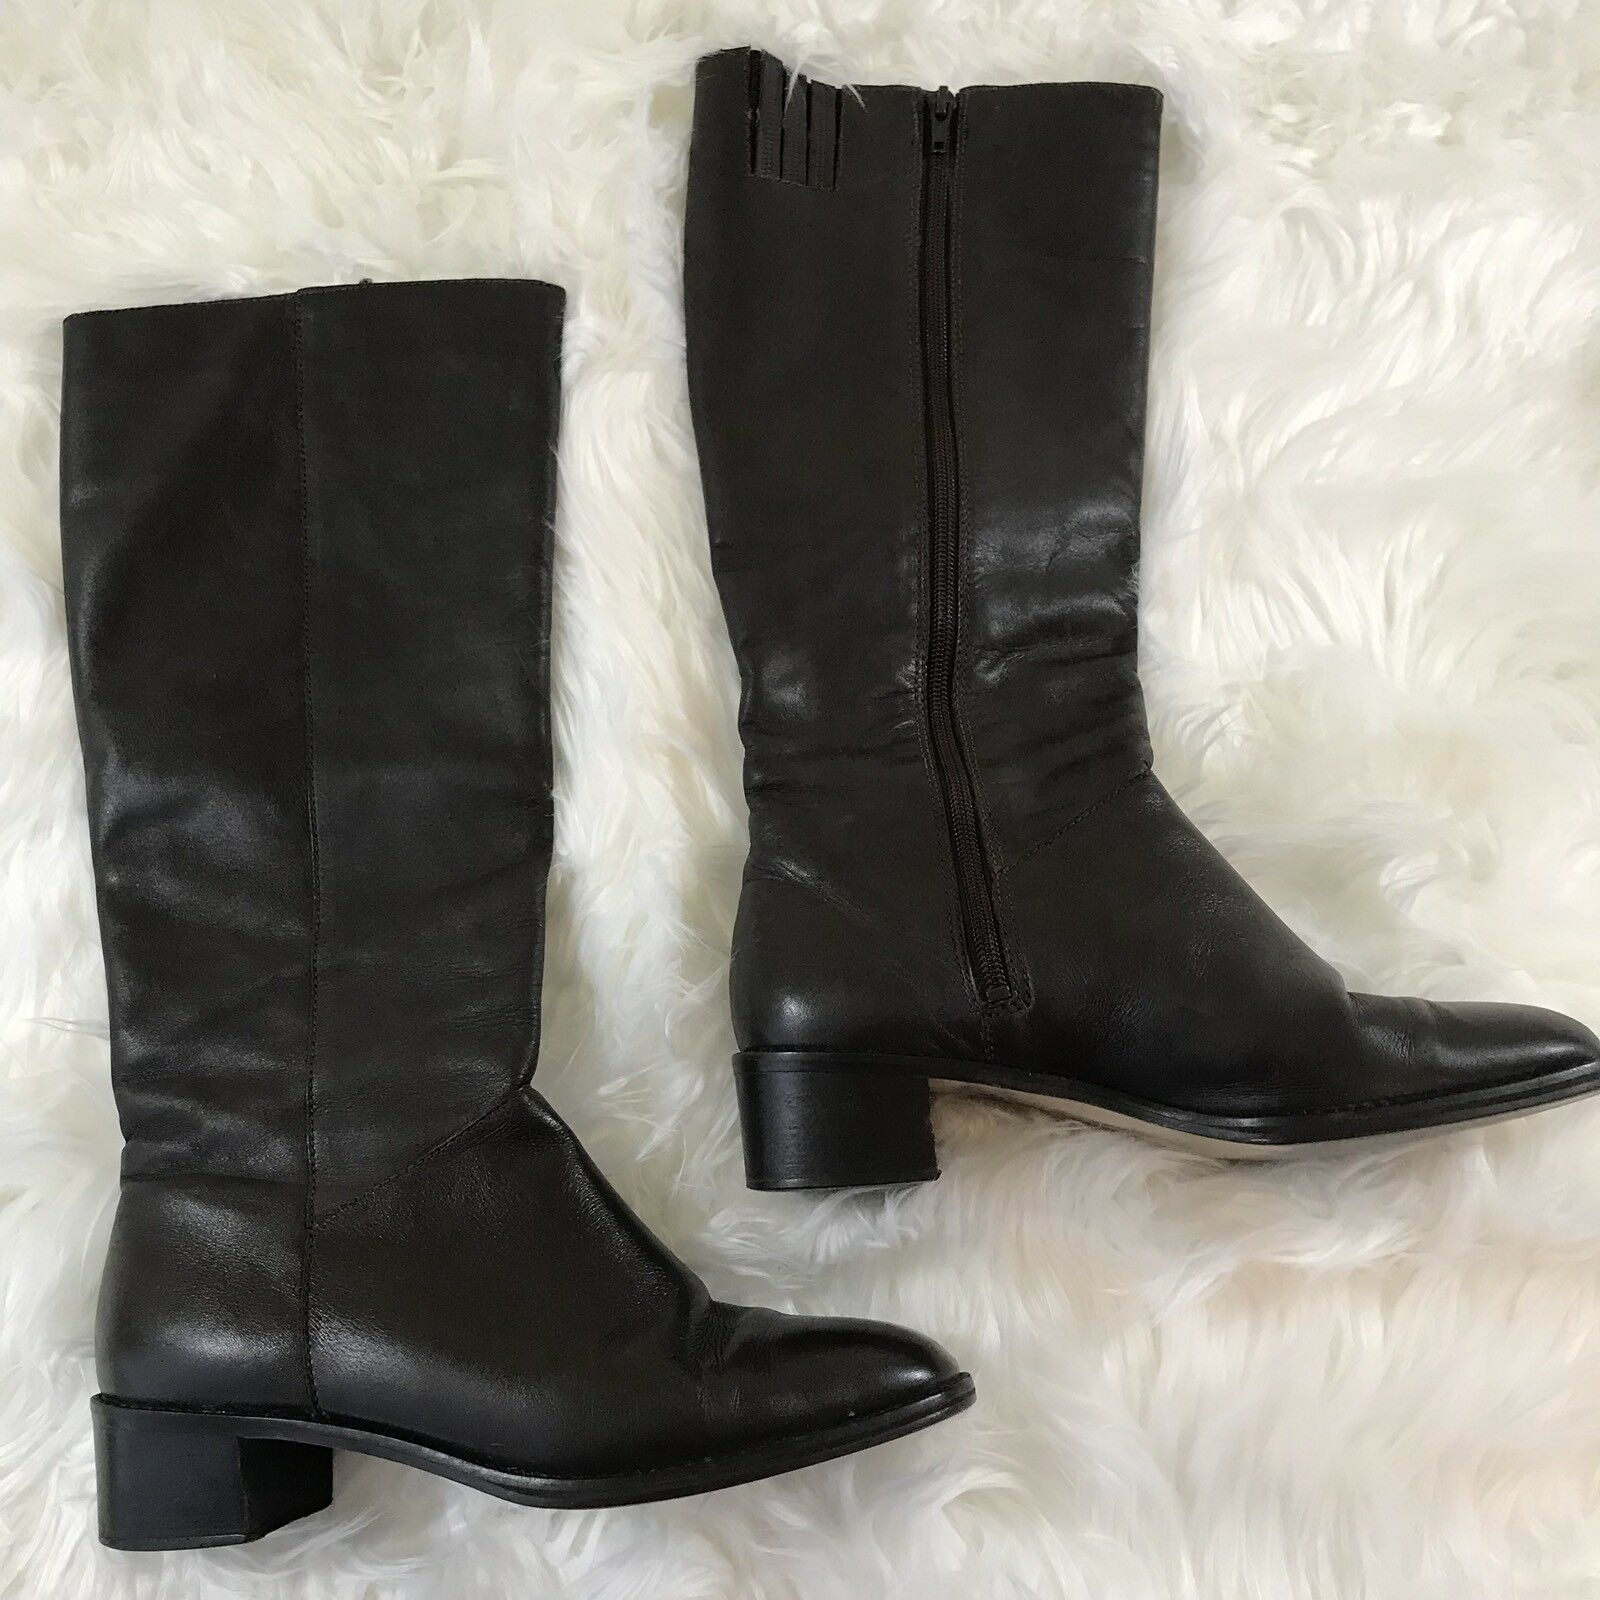 Ipanema Sz 8 M Brown Leather Knee High Riding Style Boots 1.5 in. Heels